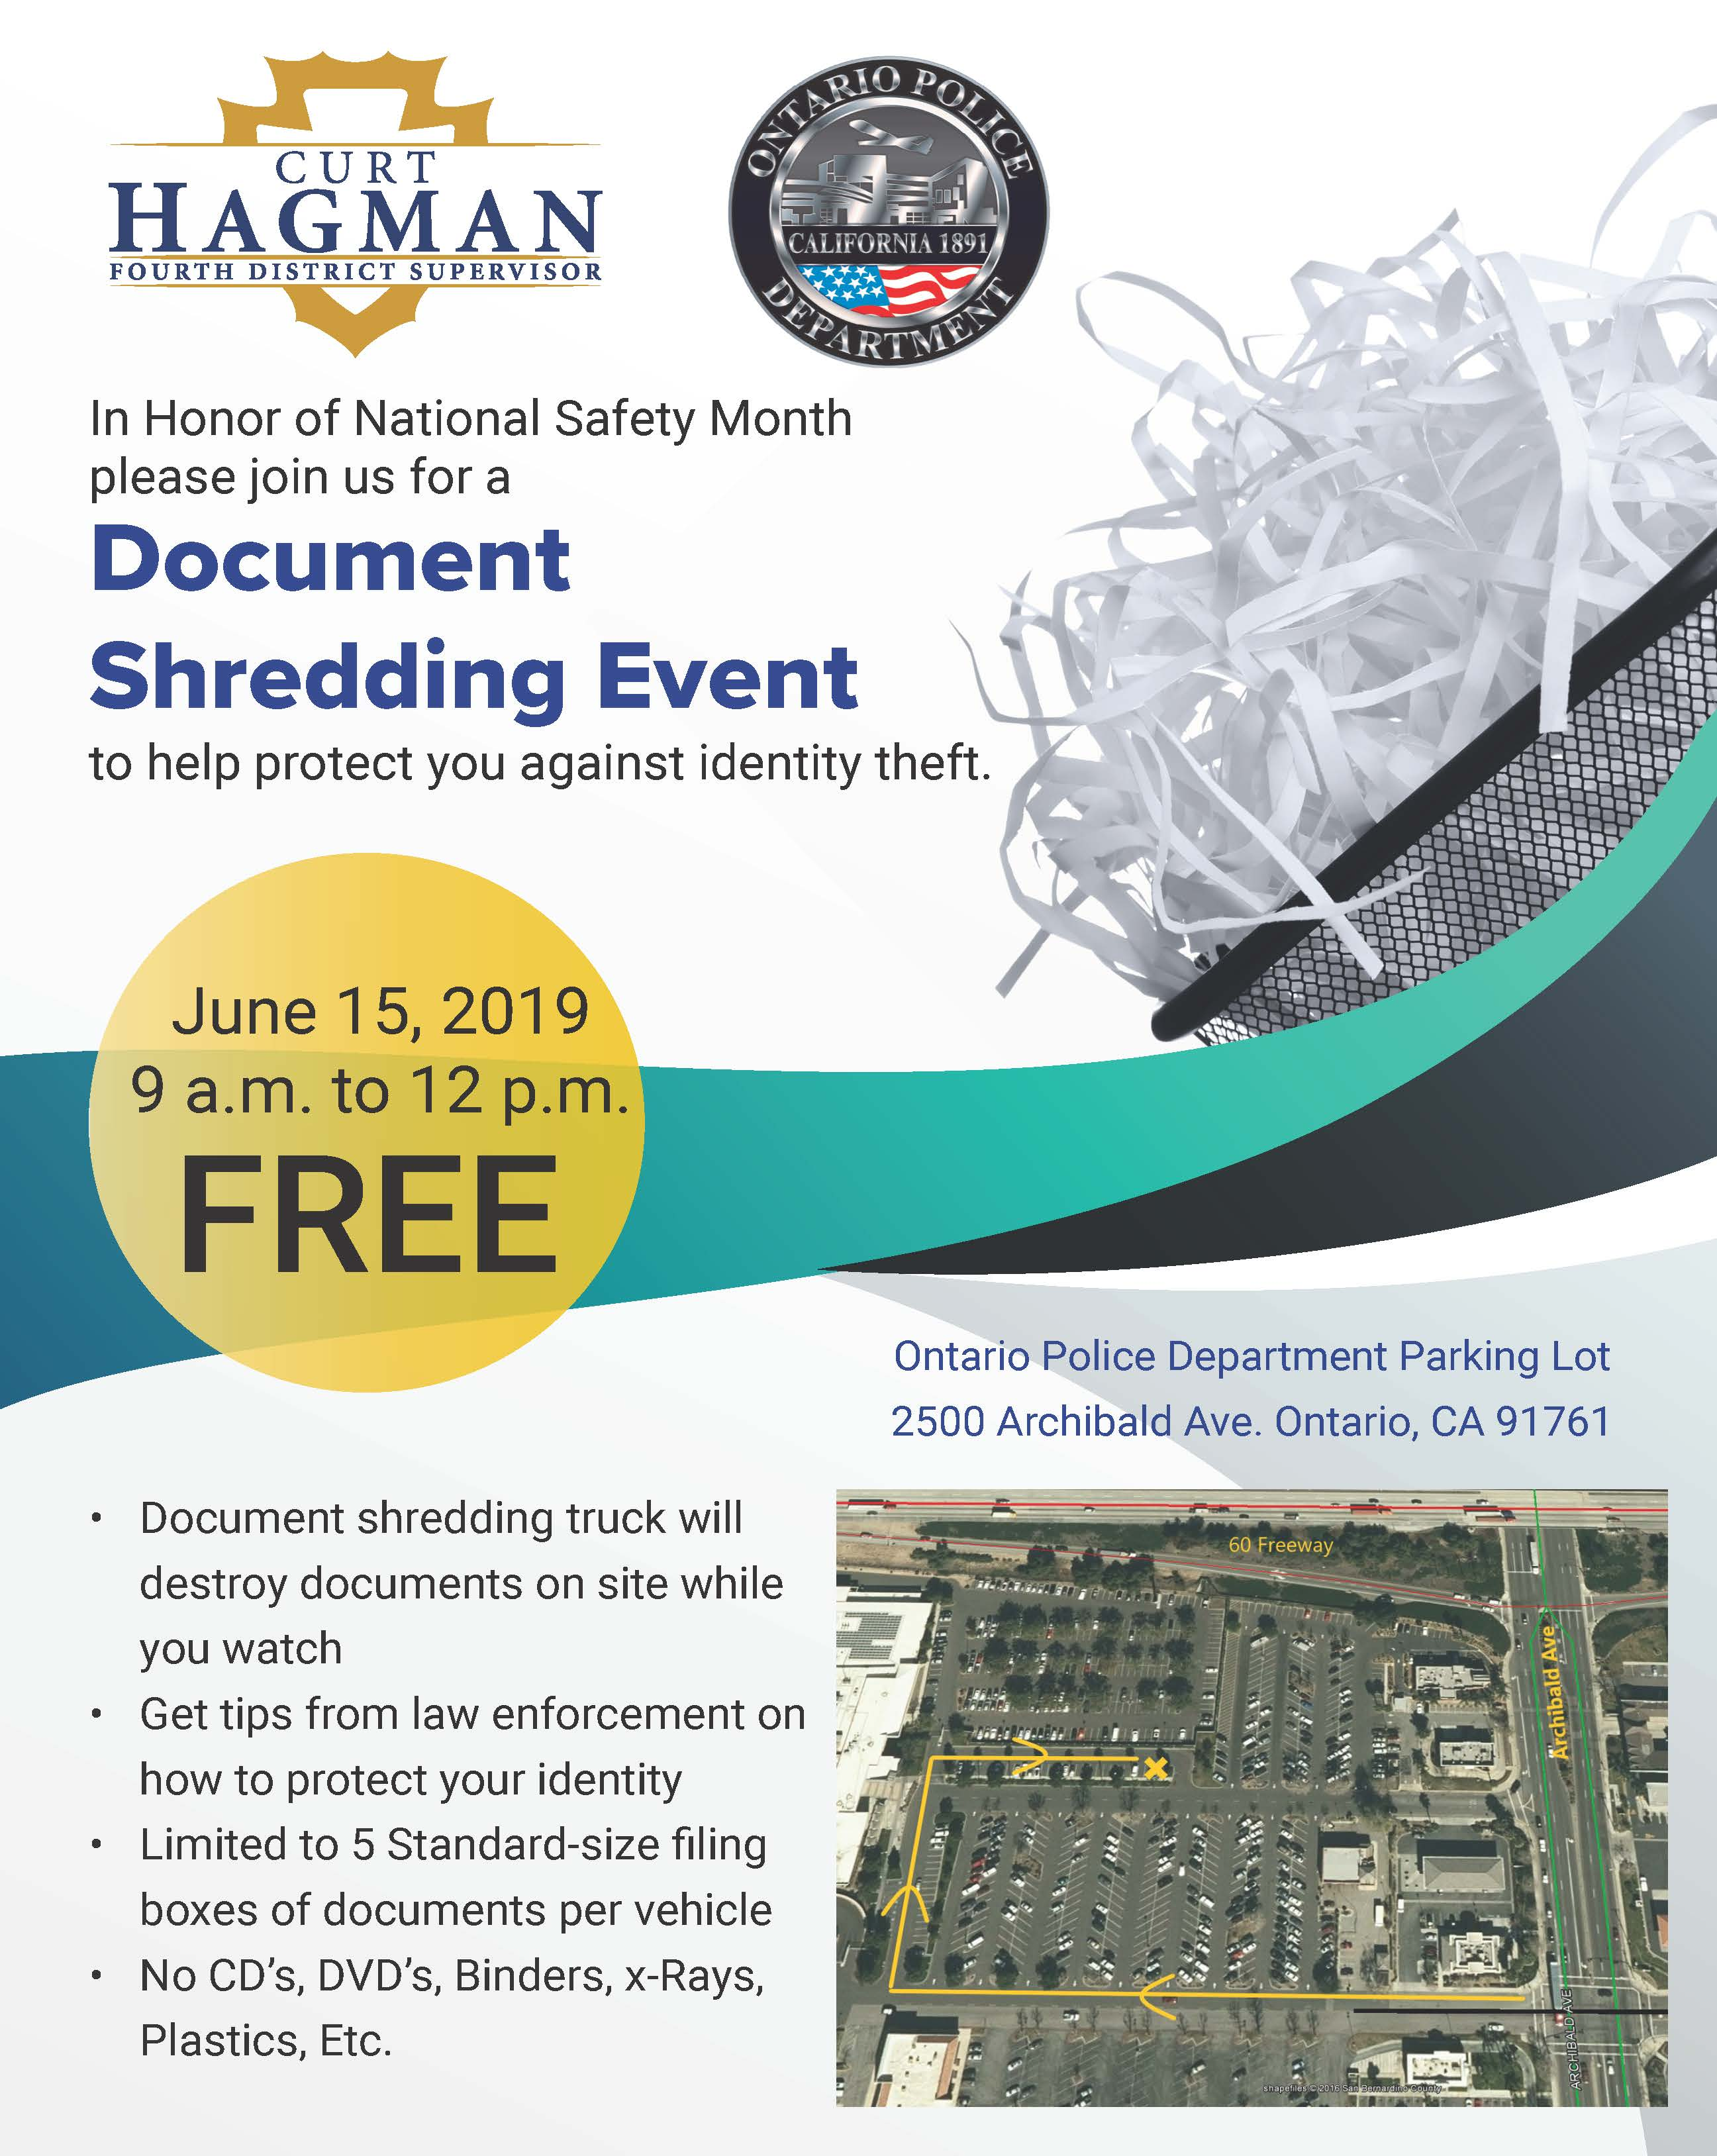 Area Code 312 Location Map, This Shredding Event Will Take Place At The Ontario Police Department Parking Lot Read More Information Regarding This Event, Area Code 312 Location Map